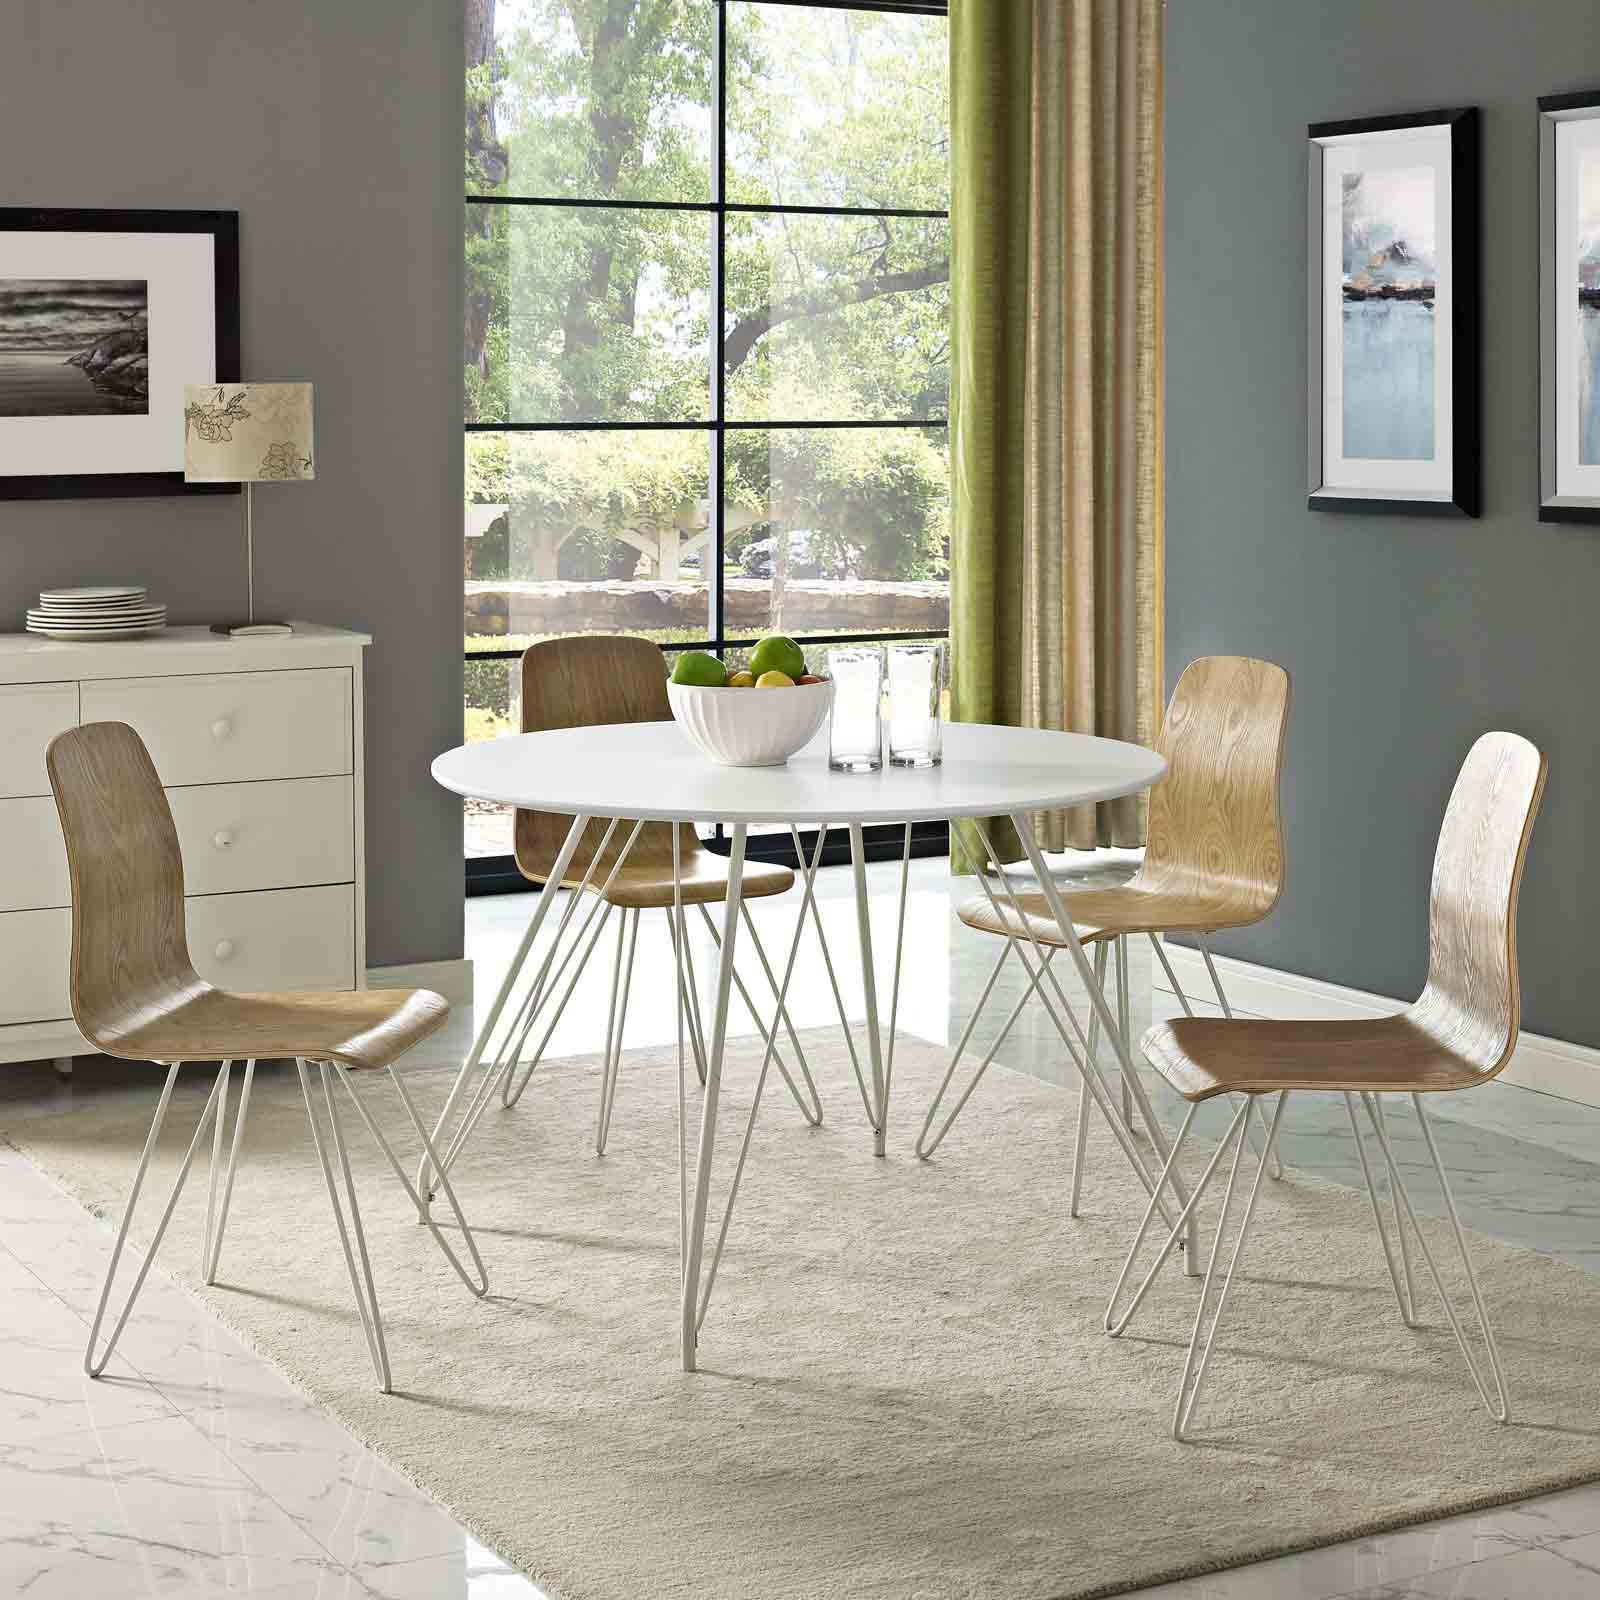 Modterior Dining Room Dining Tables Satellite Circular Dining Table In White